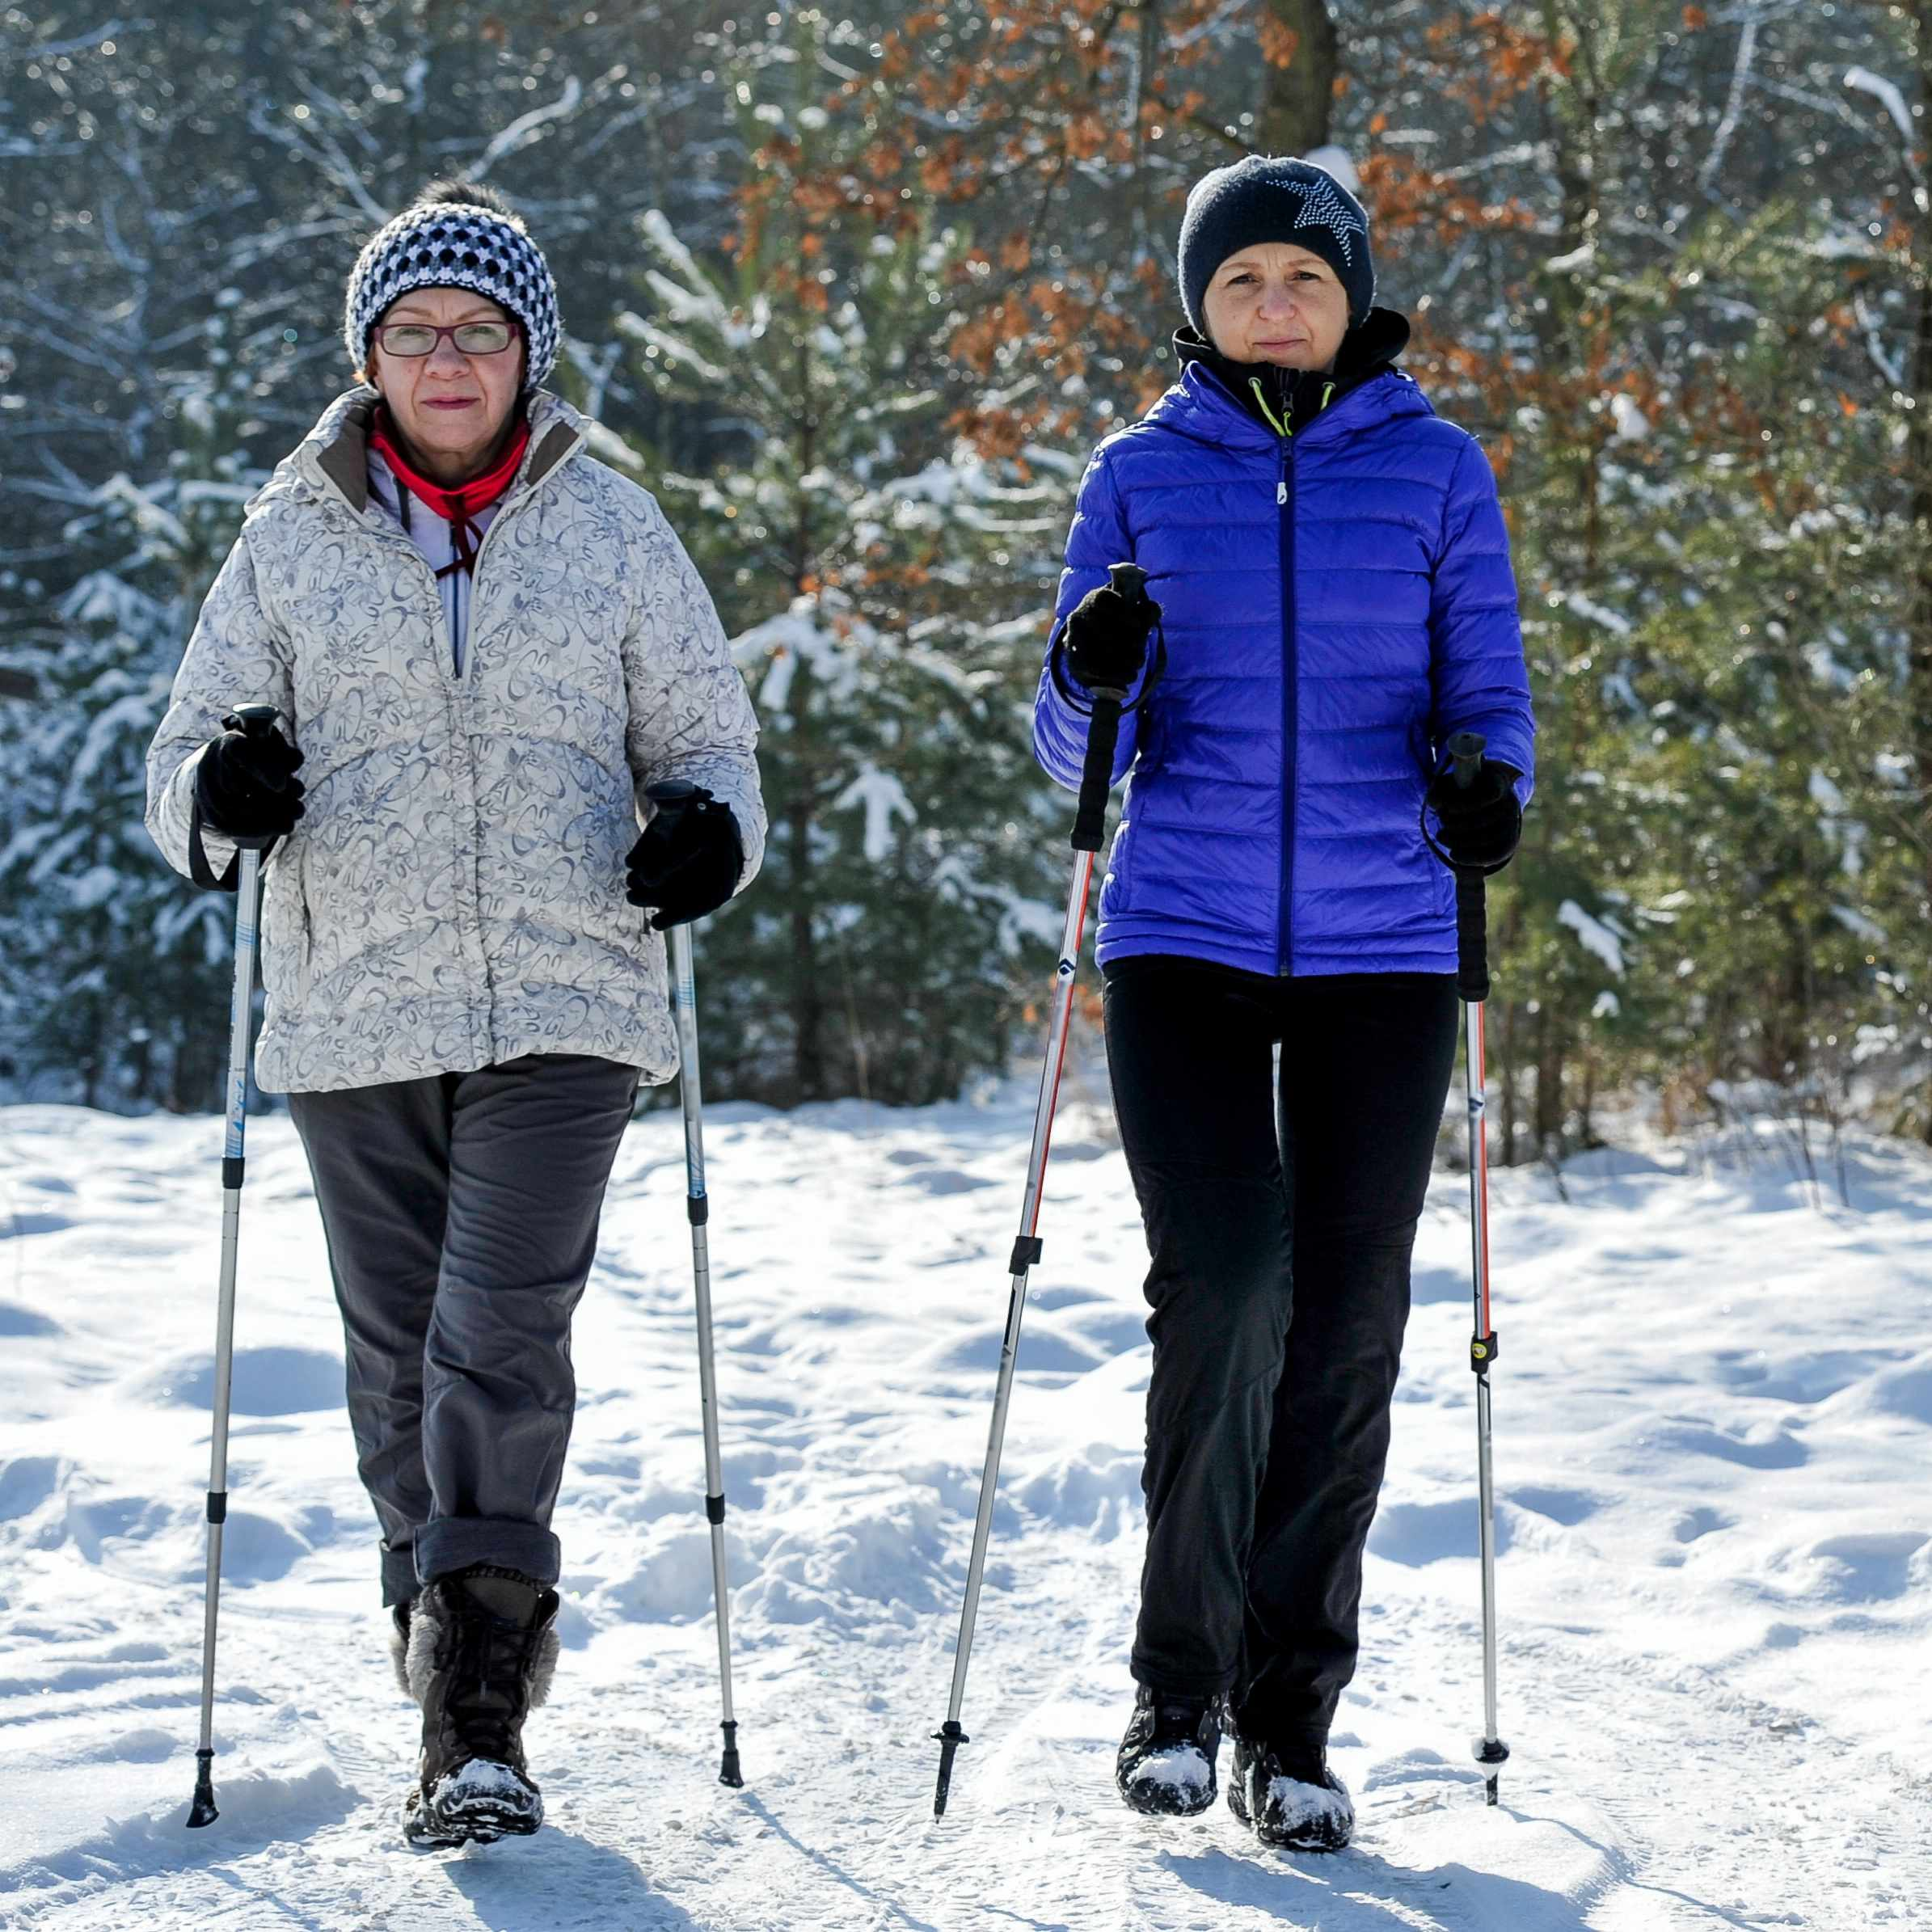 woman cross country skiing and exercising in the snow